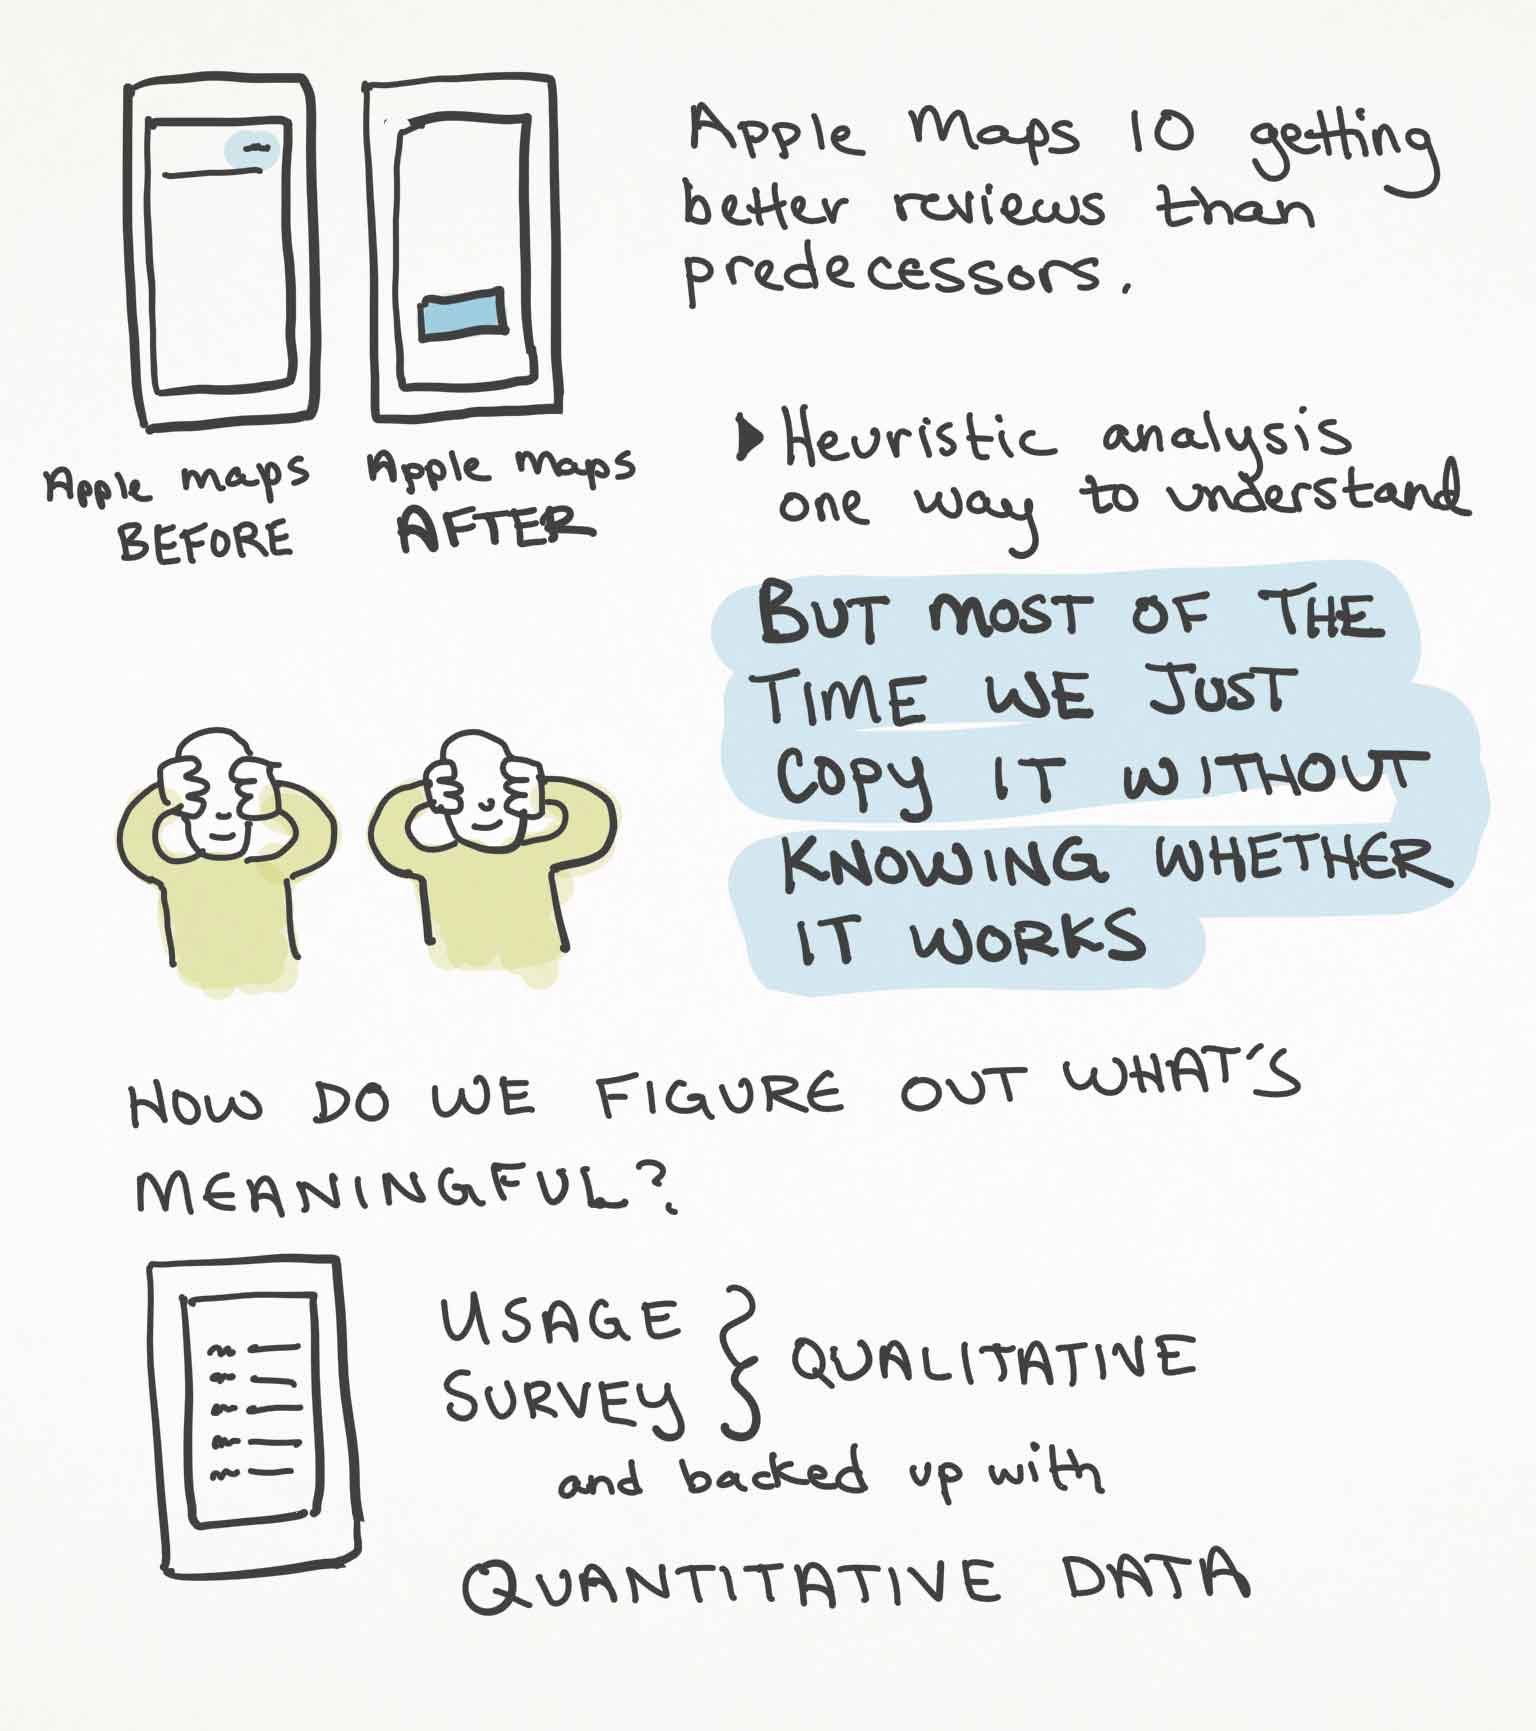 Sketchnotes page 3 from Luke Wroblewski's talk